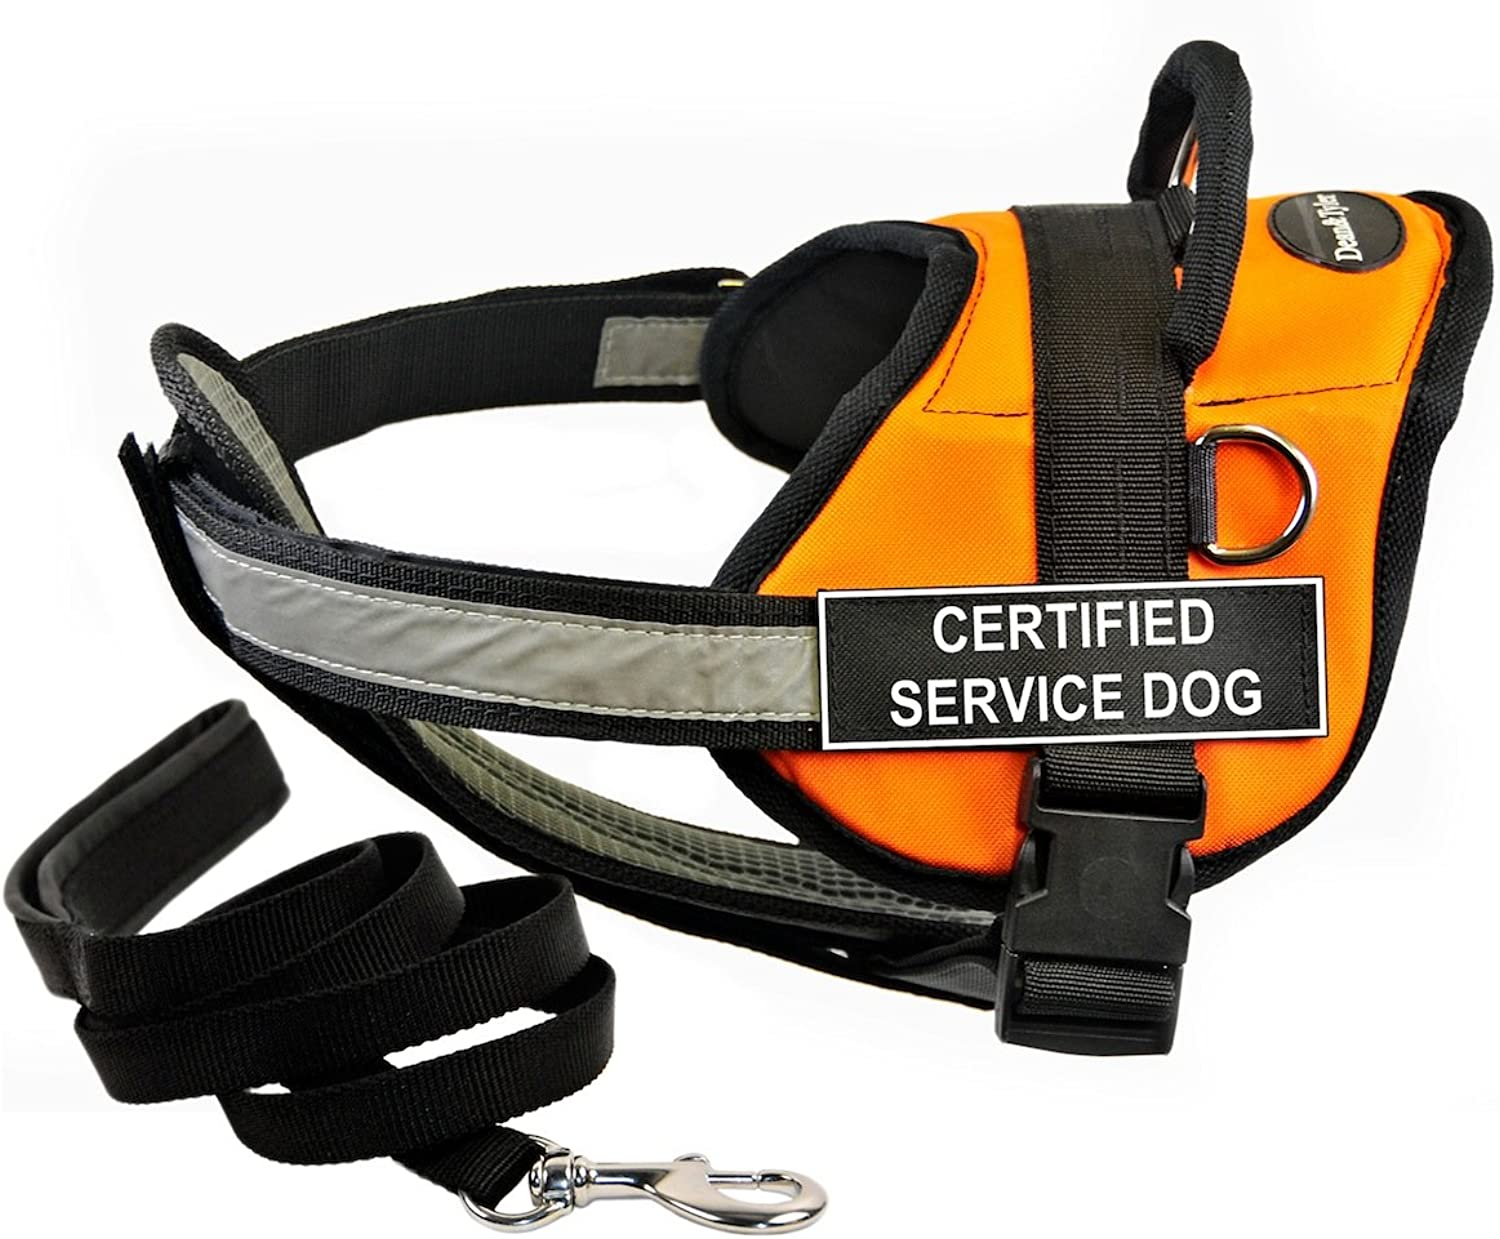 Dean & Tyler's DT Works orange CERTIFIED SERVICE DOG Harness with Chest Padding, XSmall, and Black 6 ft Padded Puppy Leash.